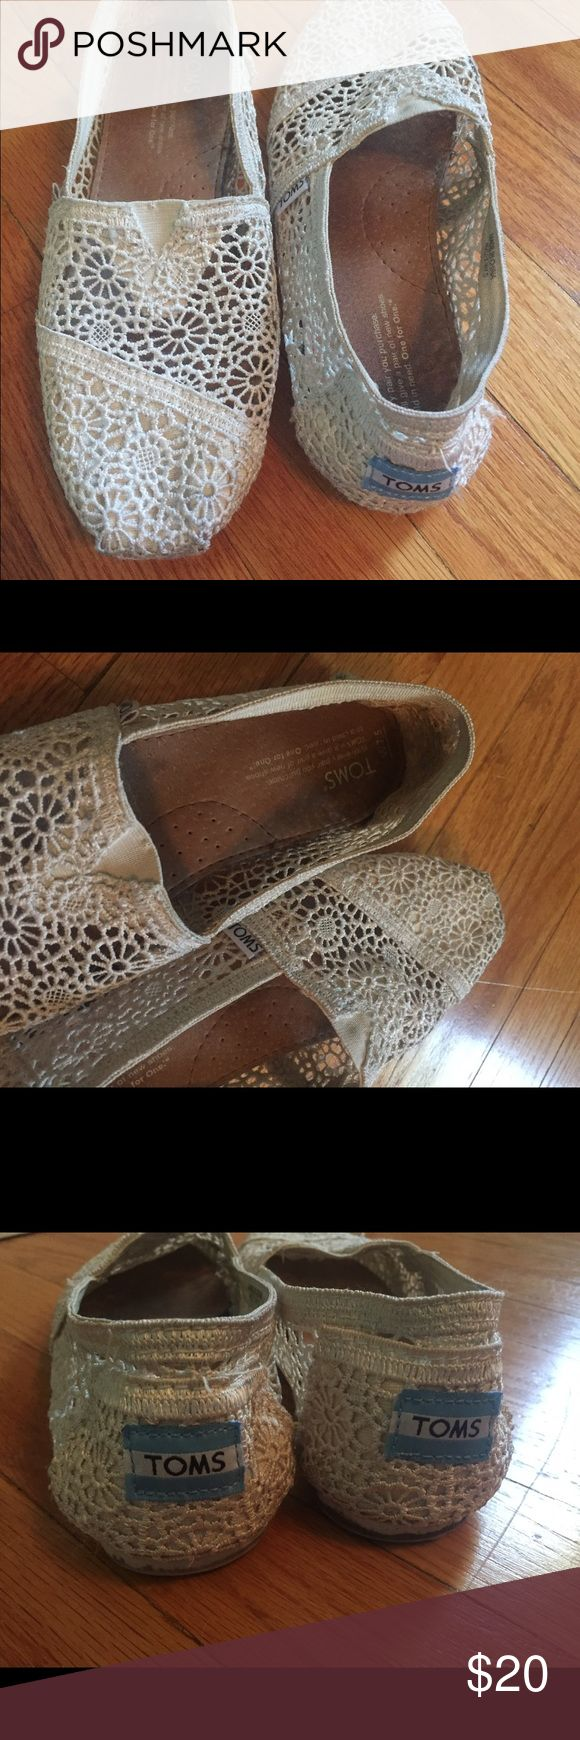 Cream lace Toms Adorable lace toms! Cream/off white color. Used but in great shape. TOMS Shoes